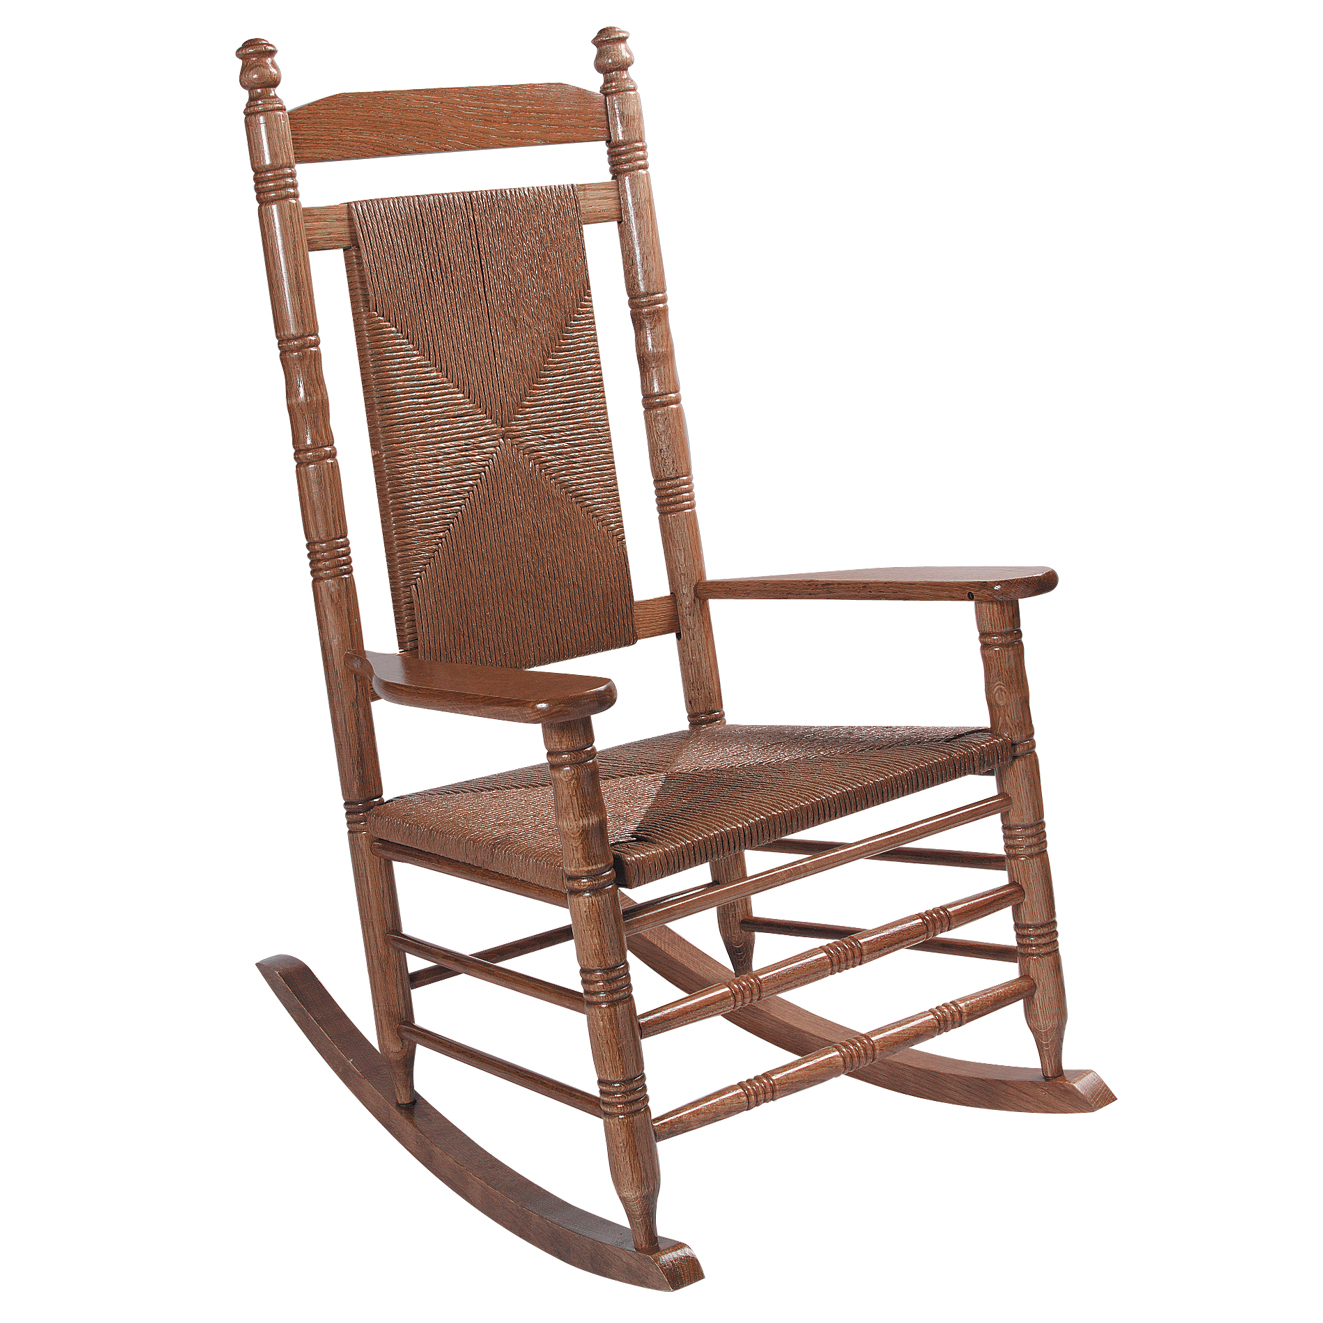 indoor rocking chairs for sale 2 person kitchen table chair sets wooden cracker barrel old country store woven seat hardwood